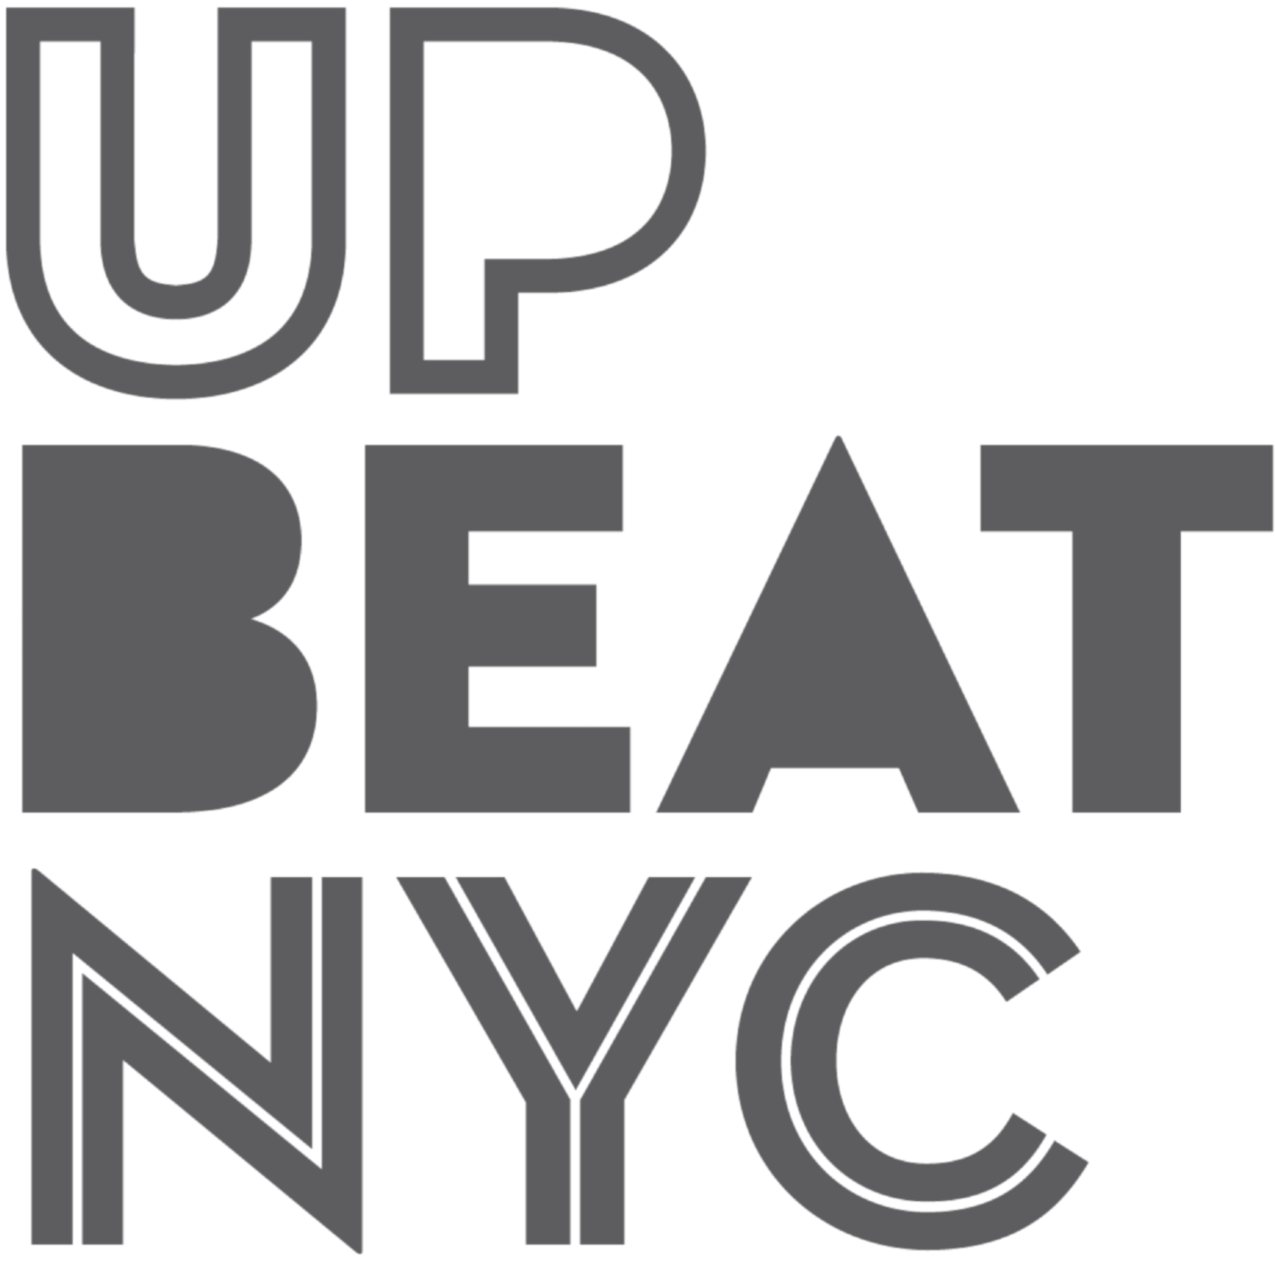 logo of UpBeat NYC